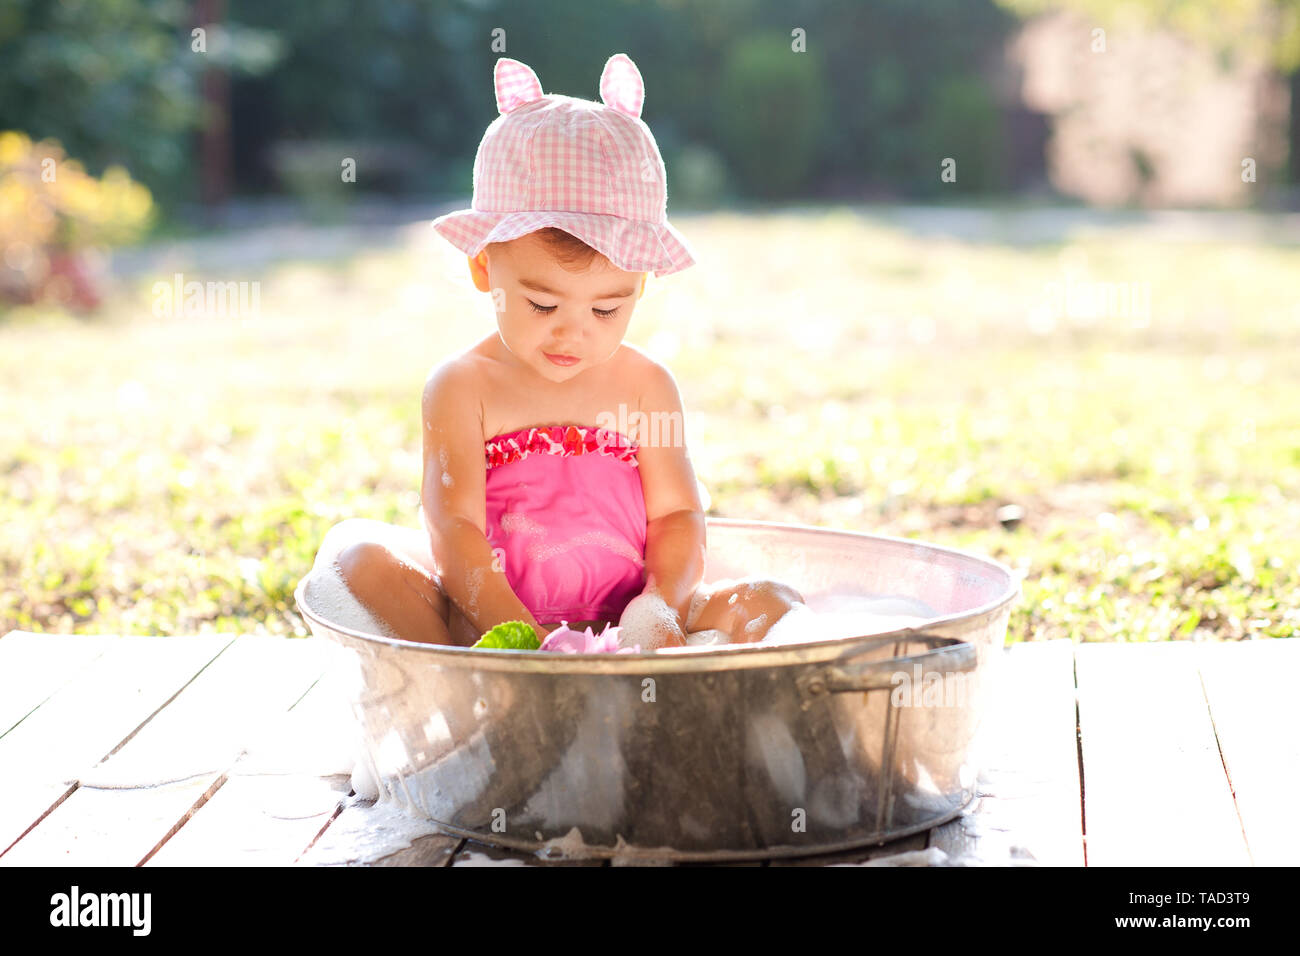 Cute baby girl taking bath outdoors. Playing in bathtub with soap foam. Stock Photo